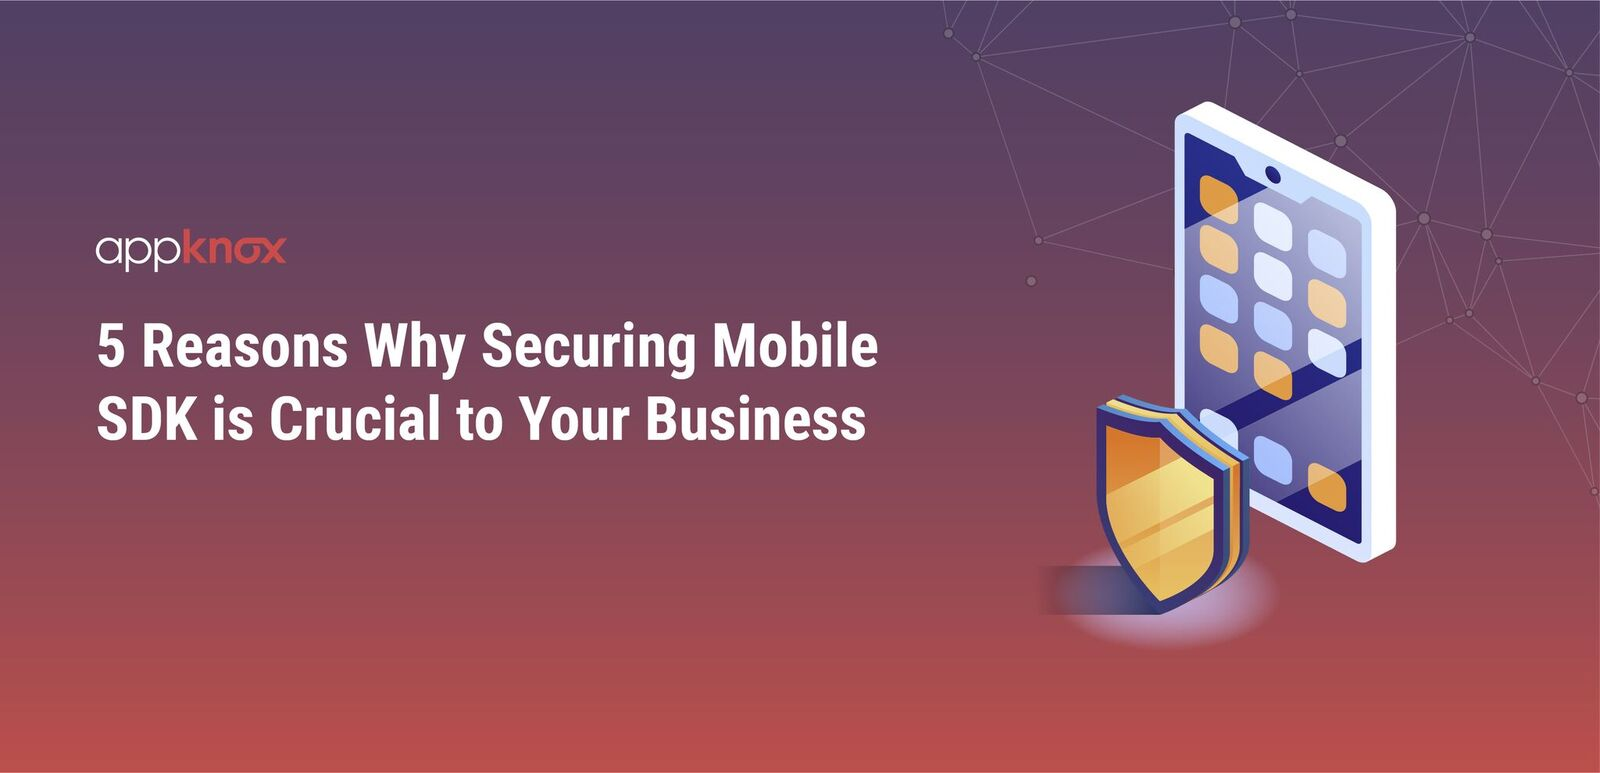 5 Reasons Why Securing Mobile SDK is Crucial to Your Business